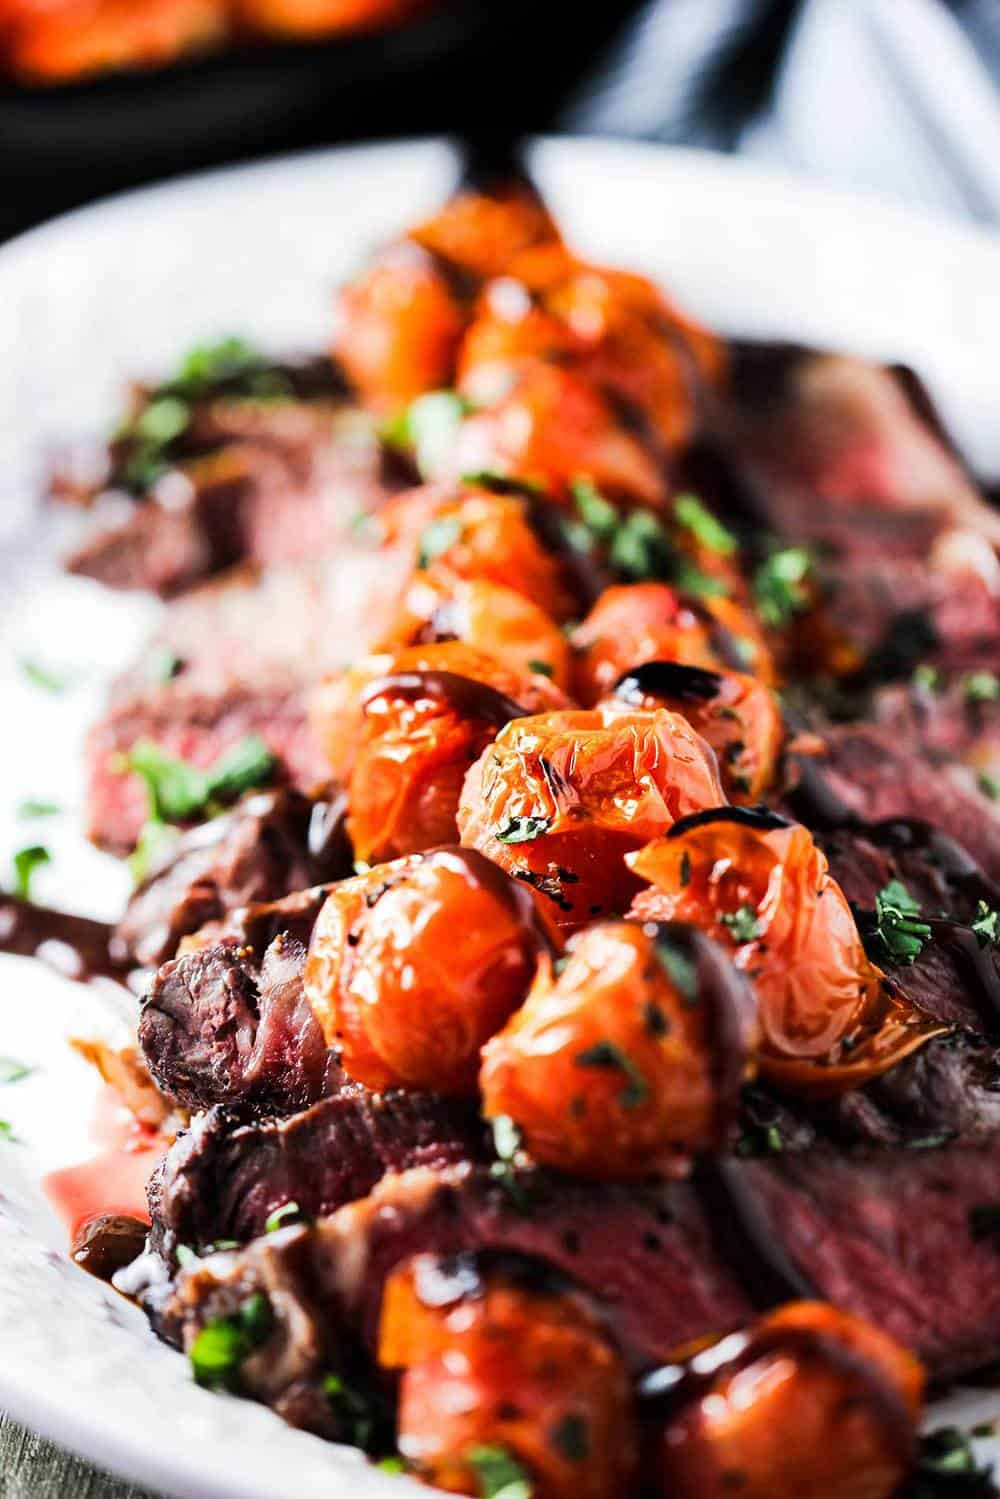 Seared ribeye with blistered tomatoes and bordelaise sauce on a platter